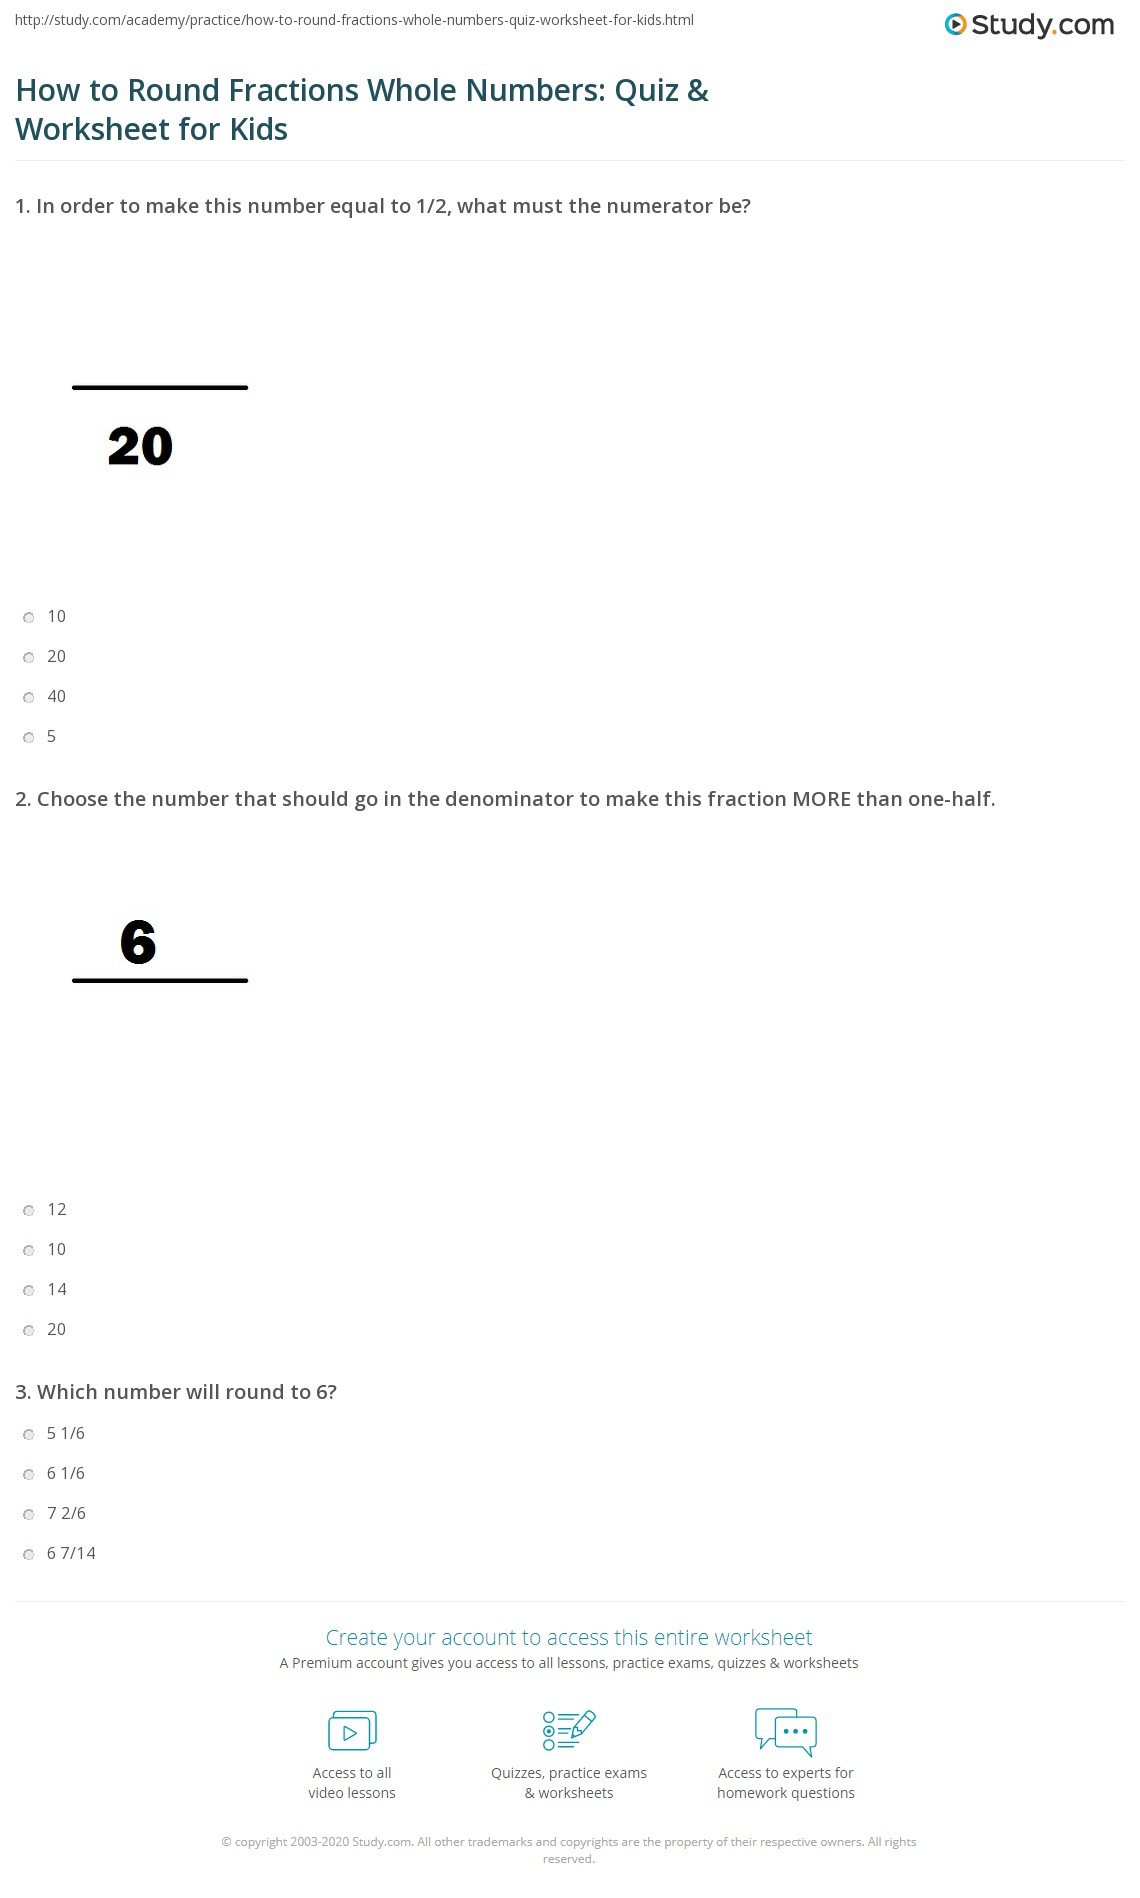 How To Round Fractions Whole Numbers Quiz Amp Worksheet For Kids